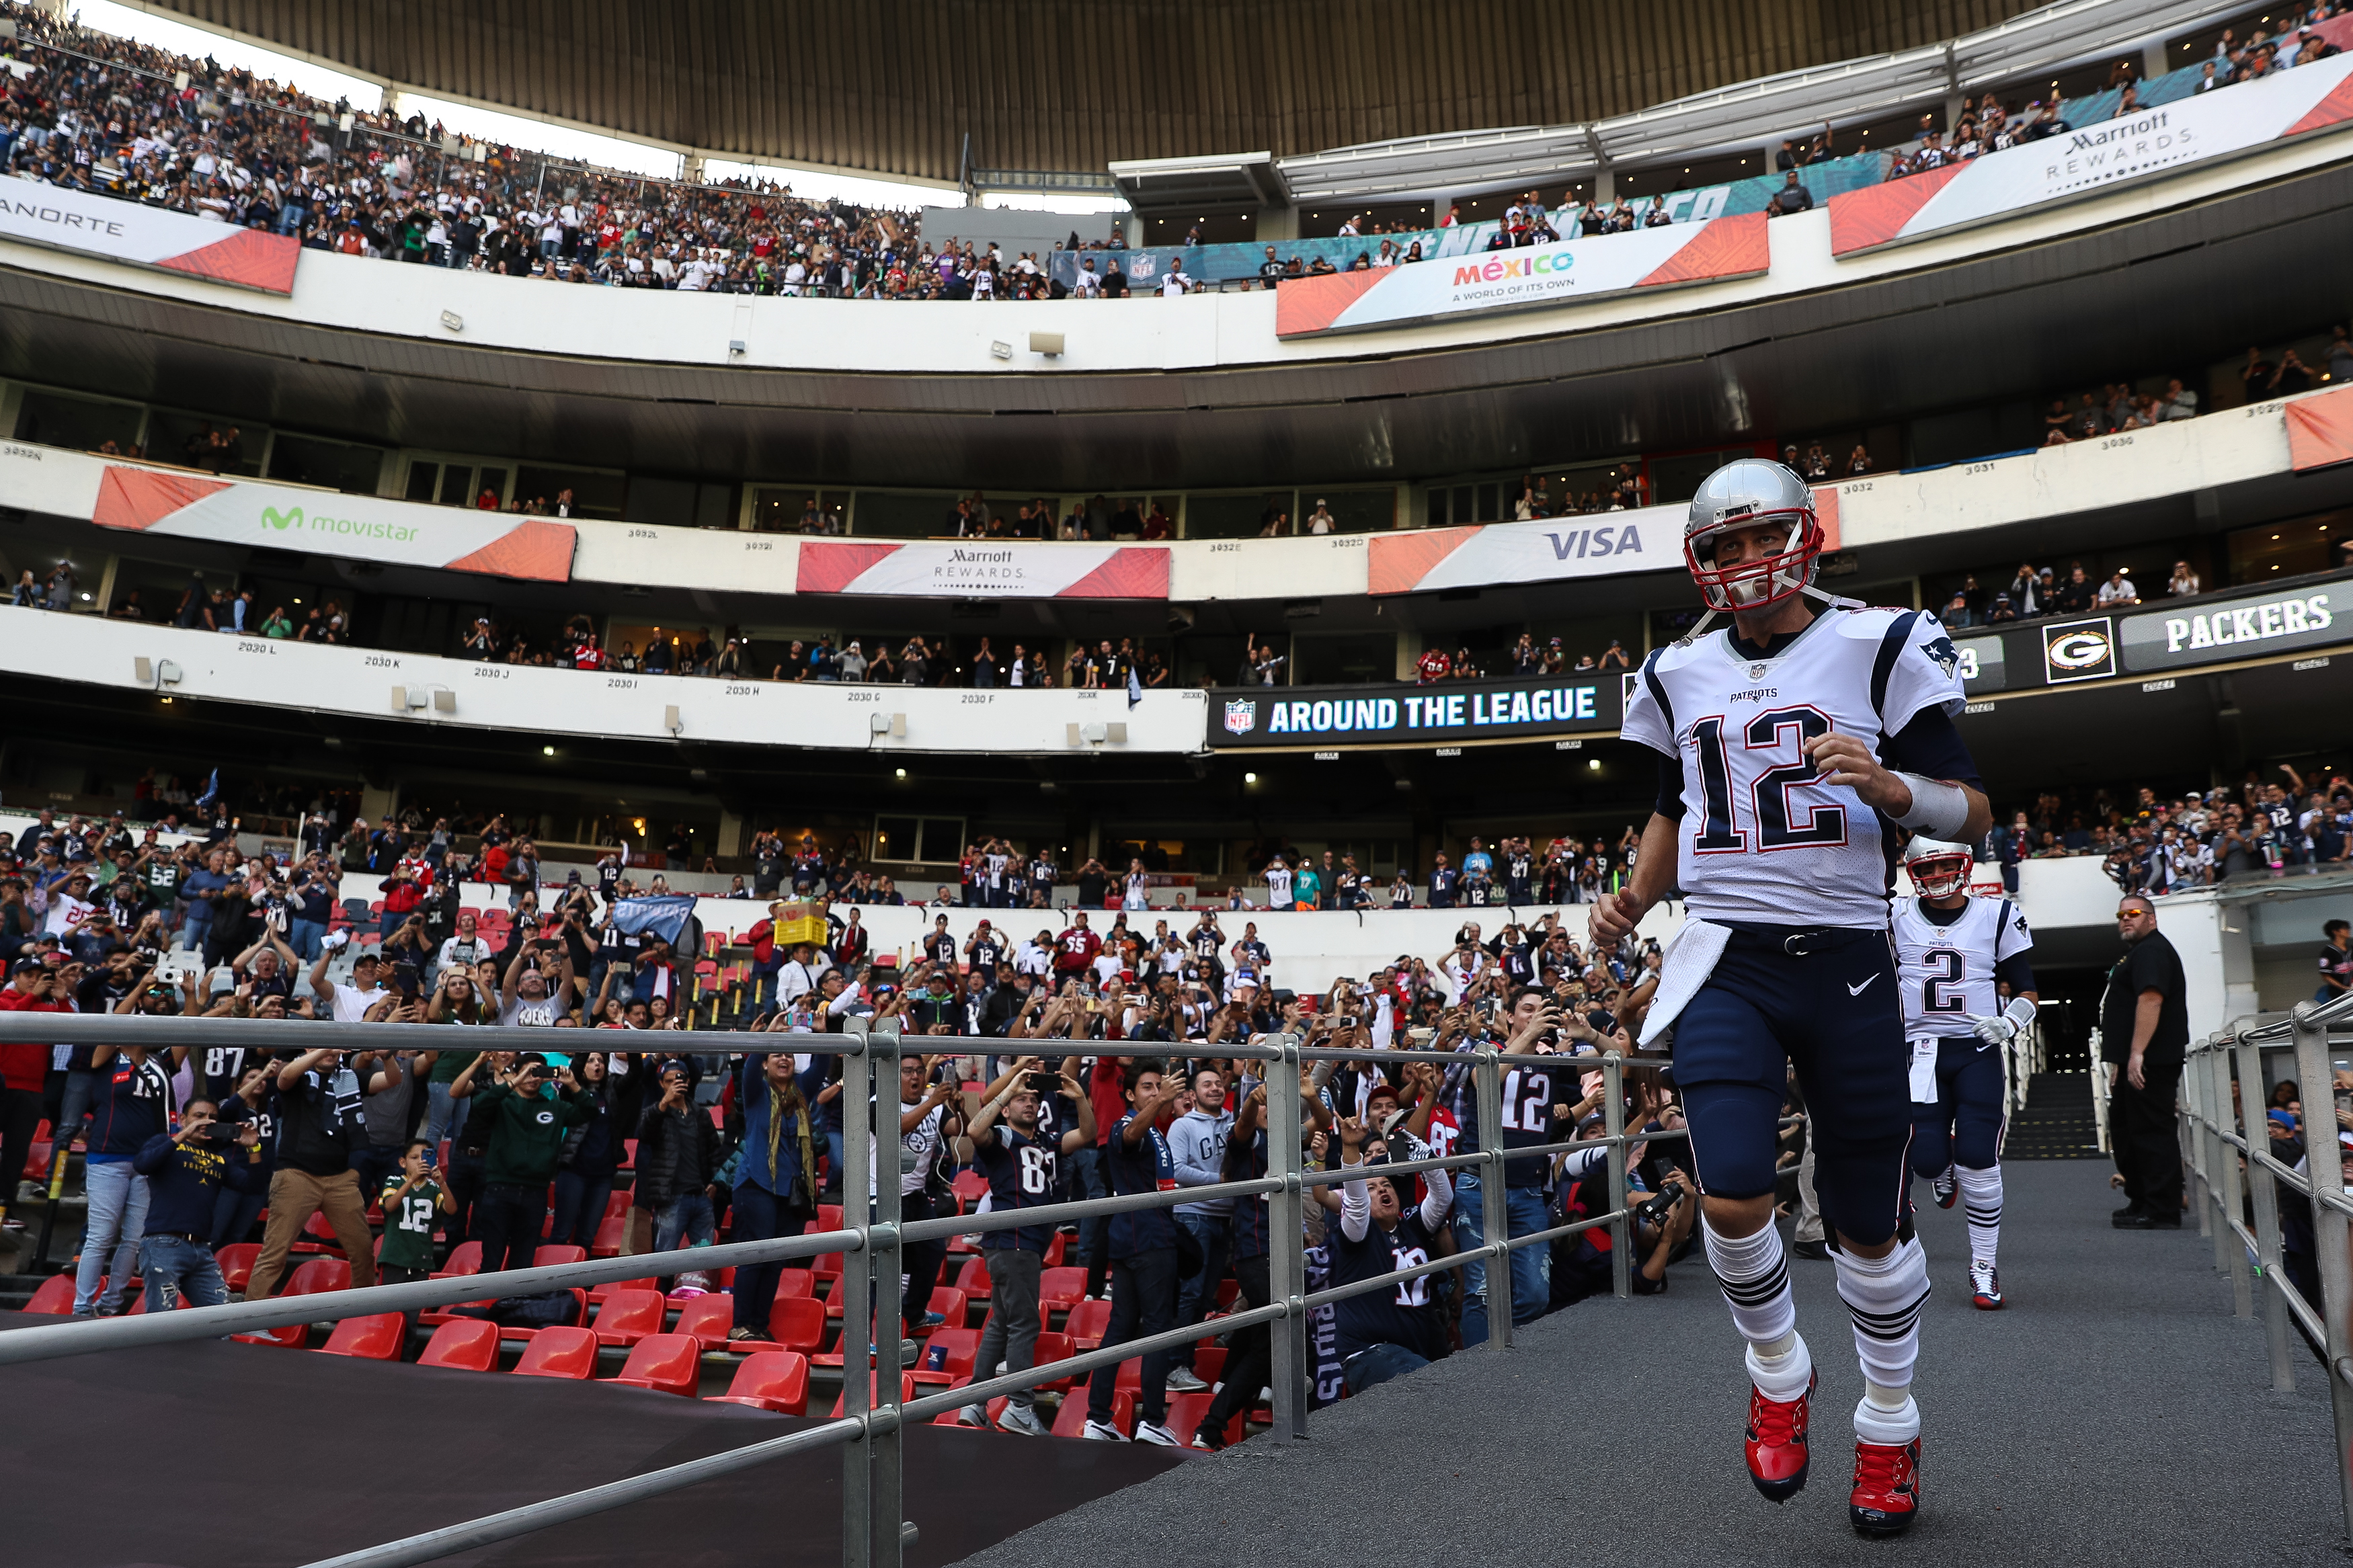 MEXICO CITY, MEXICO - NOVEMBER 19:  Tom Brady #12 of the New England Patriots takes the field for warm ups prior to the game against the Oakland Raiders at Estadio Azteca on November 19, 2017 in Mexico City, Mexico.  (Photo by Buda Mendes/Getty Images)